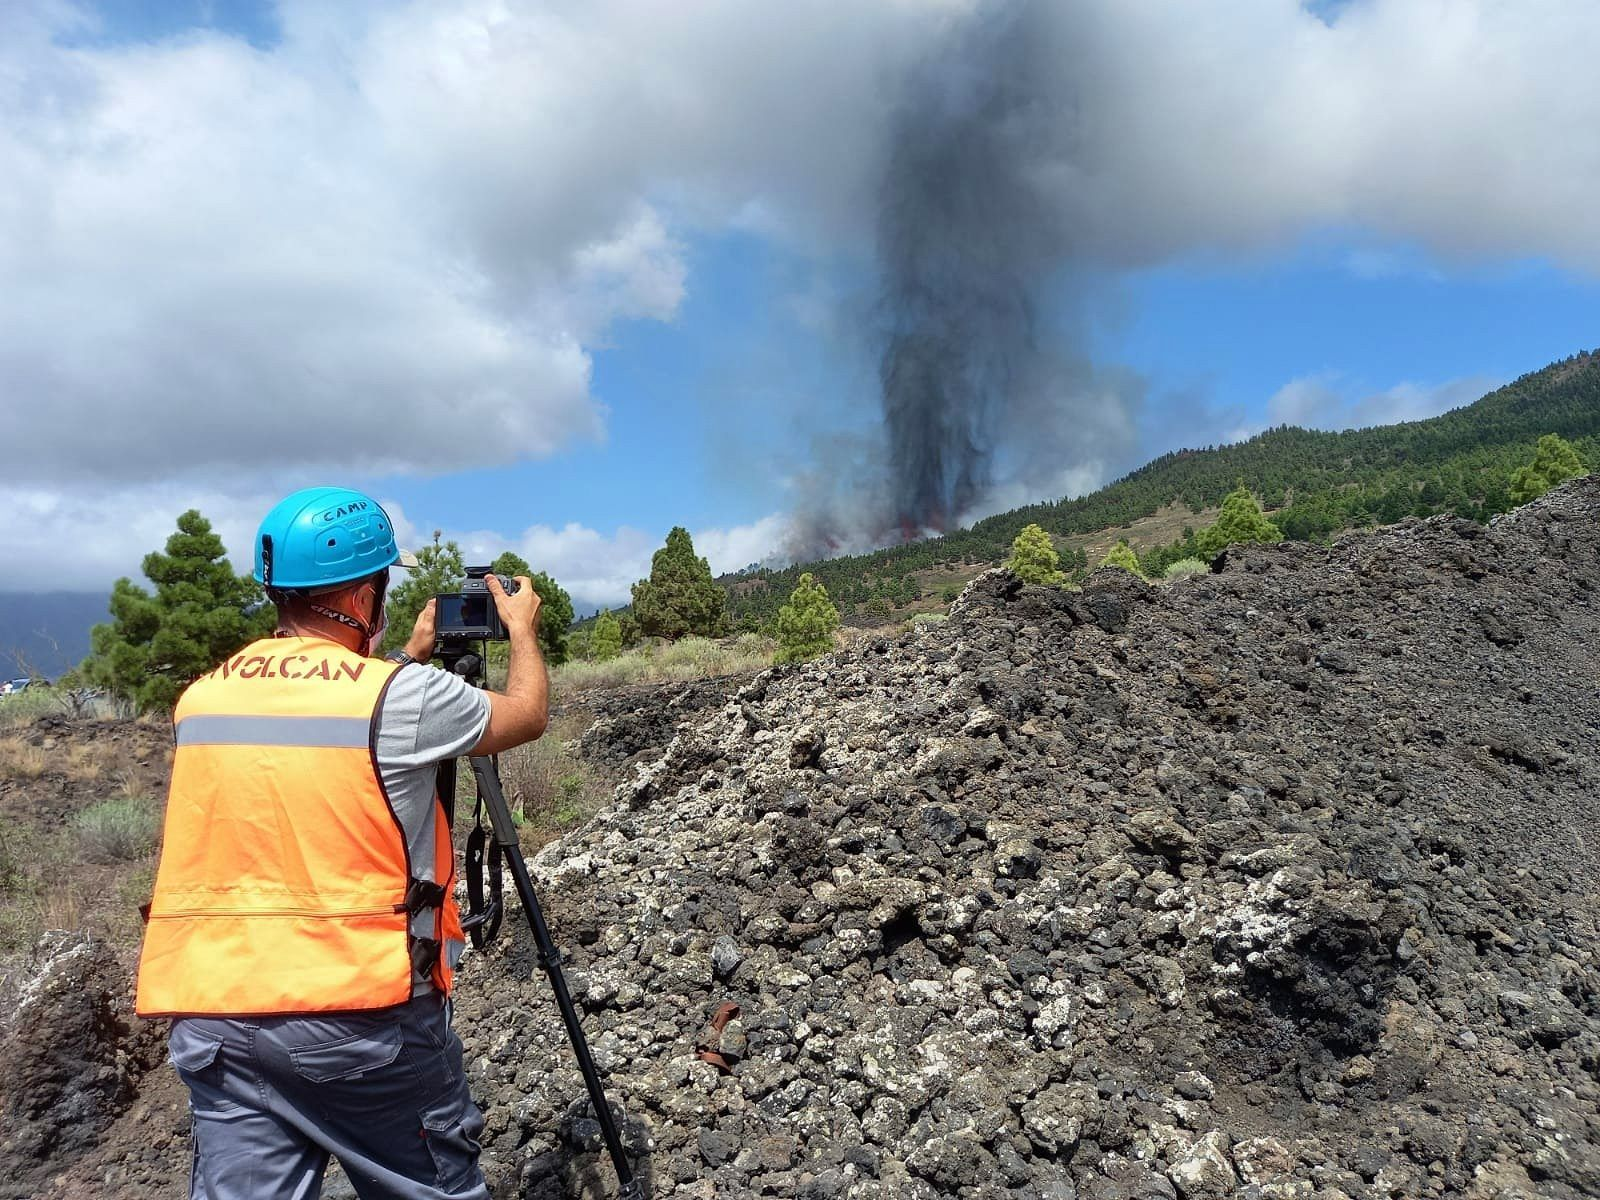 La Palma -19.09.2021 / 3:10 p.m. - thermal measurements by InVolcan during the start of the eruption - INVOLCAN